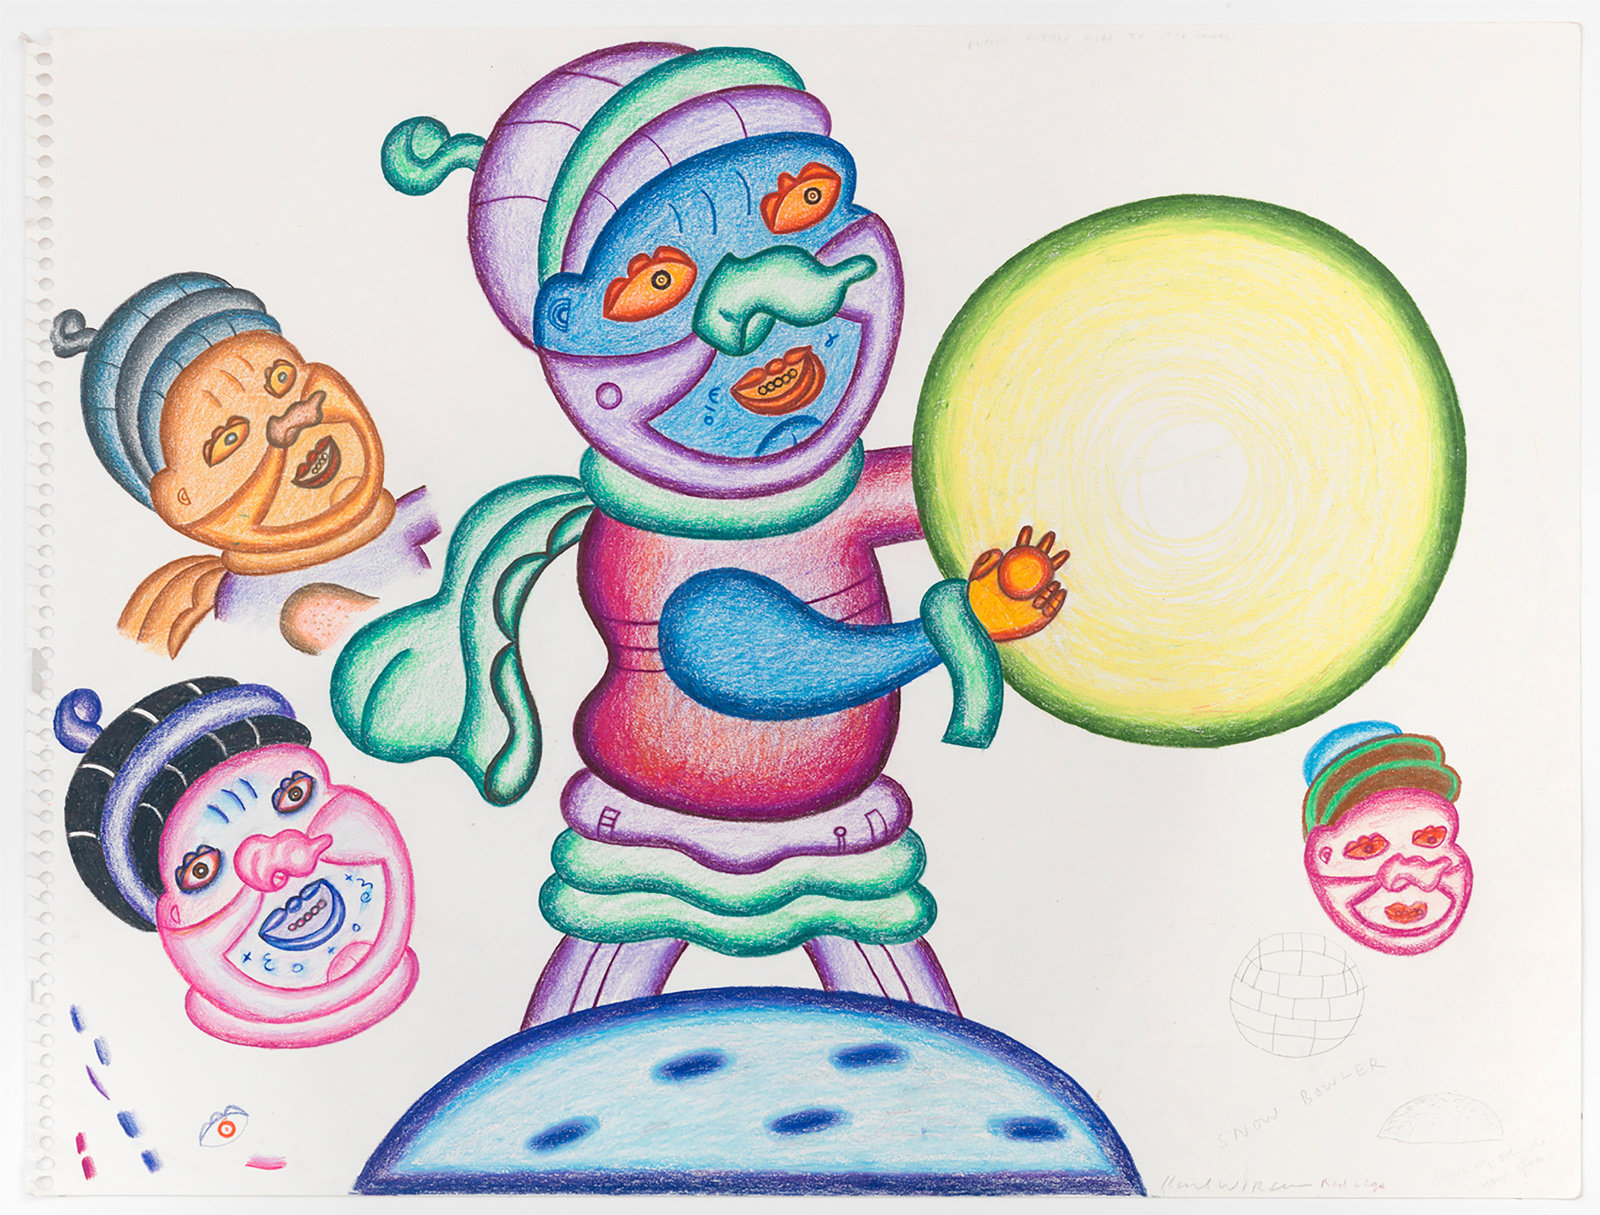 A color pencil and graphite on paper drawing by Karl Wirsum of an abstracted, colorful figure holding a yellow and green orb, surrounded by the faces of three additional figures.